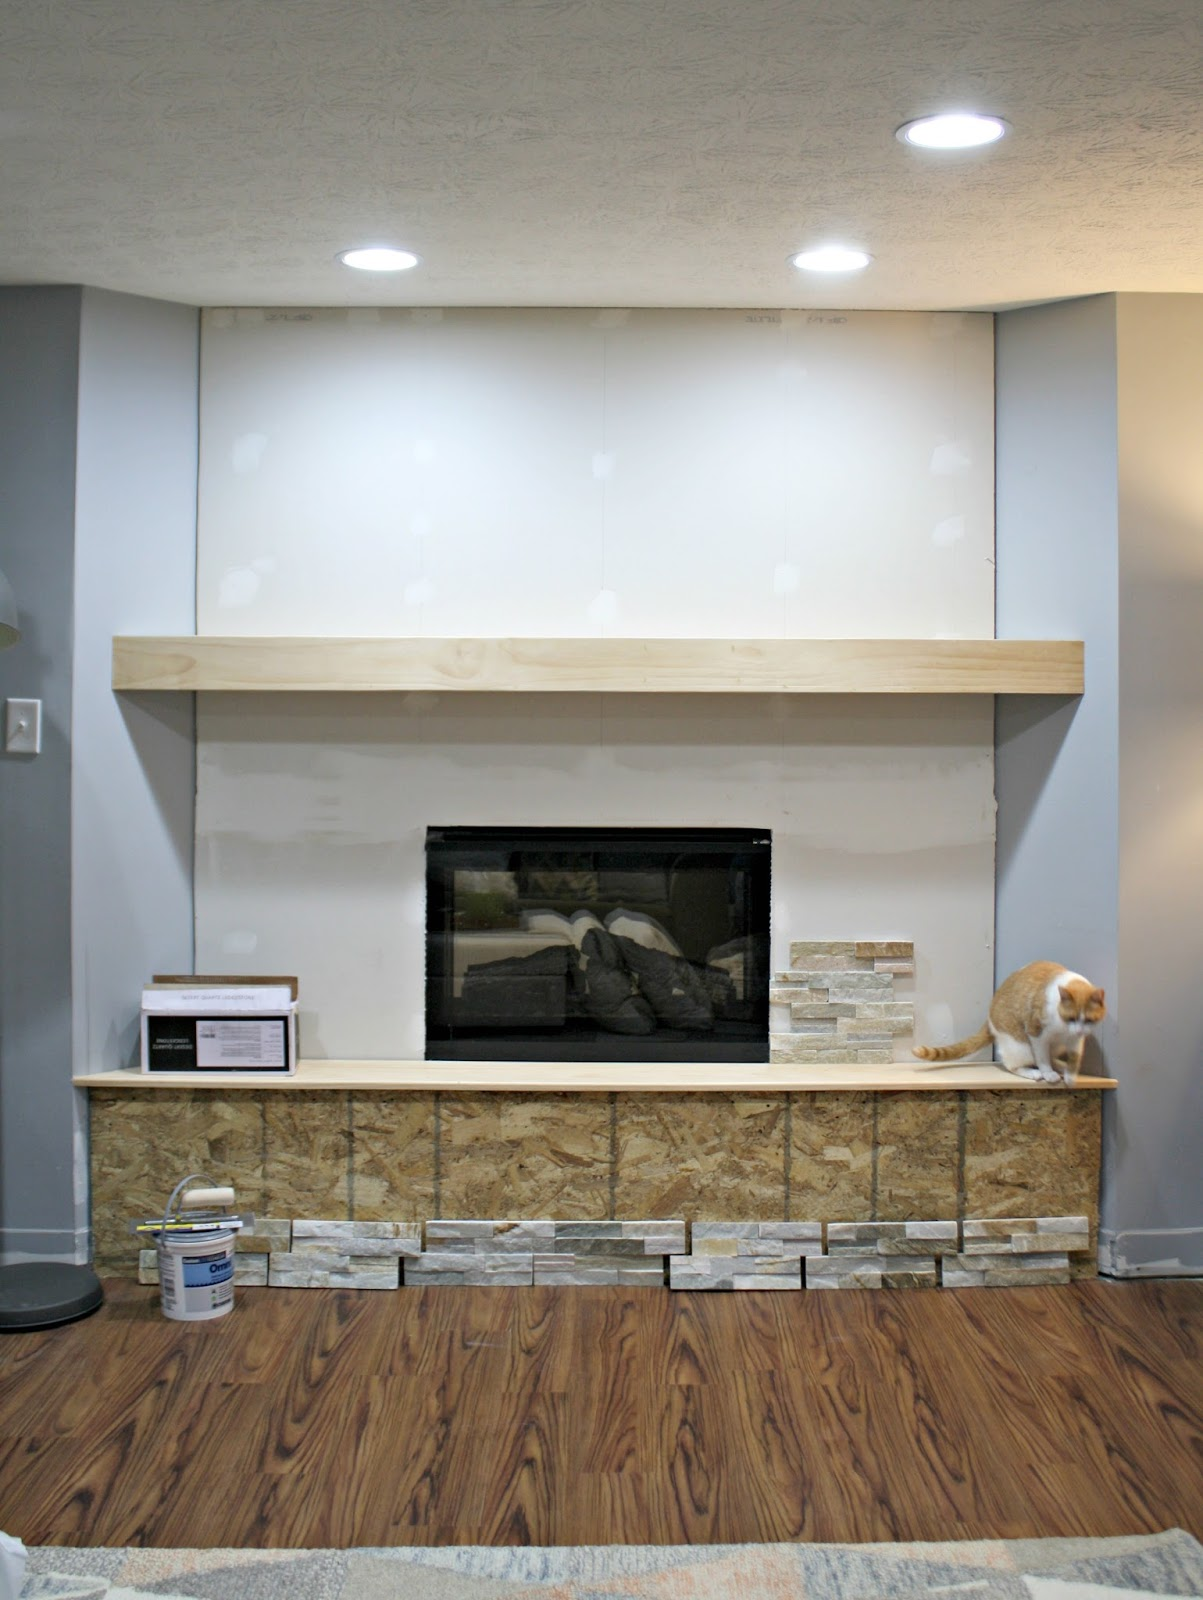 How To Install Stacked Stone Tile On A Fireplace Wall From Thrifty